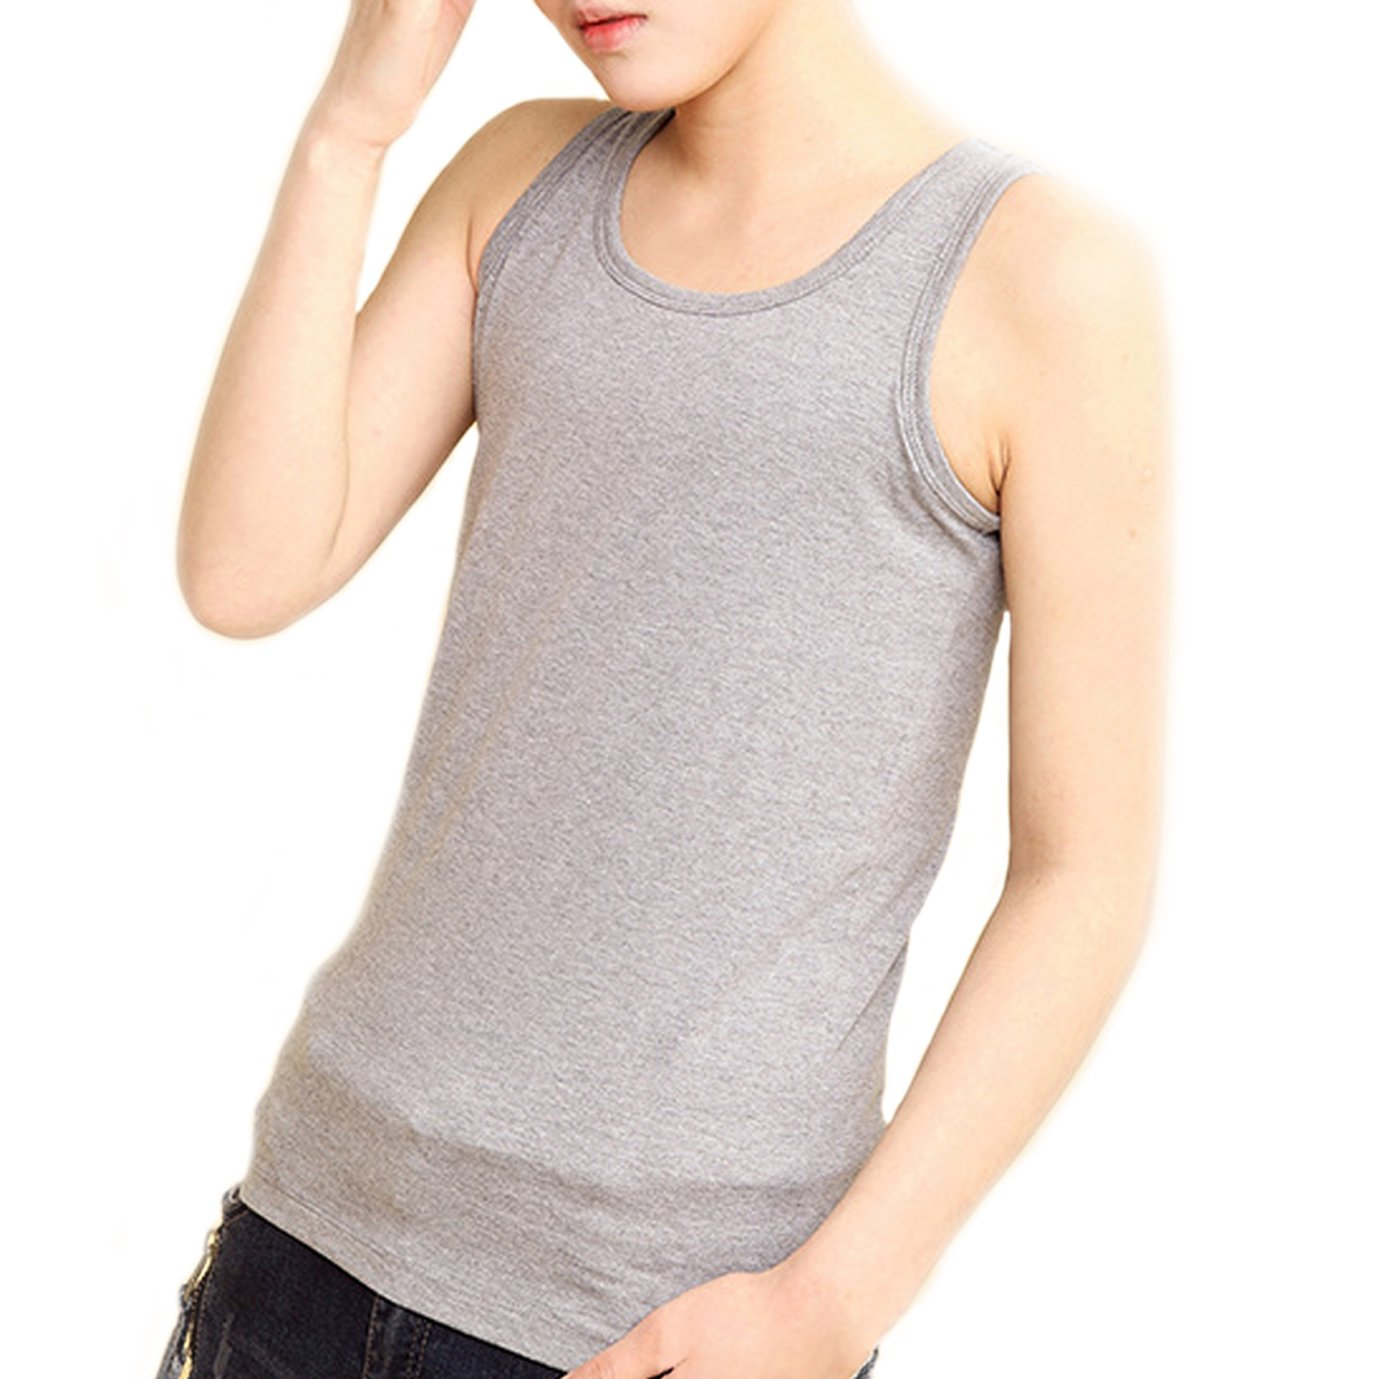 BaronHong Chest Binder Cotton Vest Tank Top for Tomboy Lesbian (Can be Worn Alone) 41098570606-T